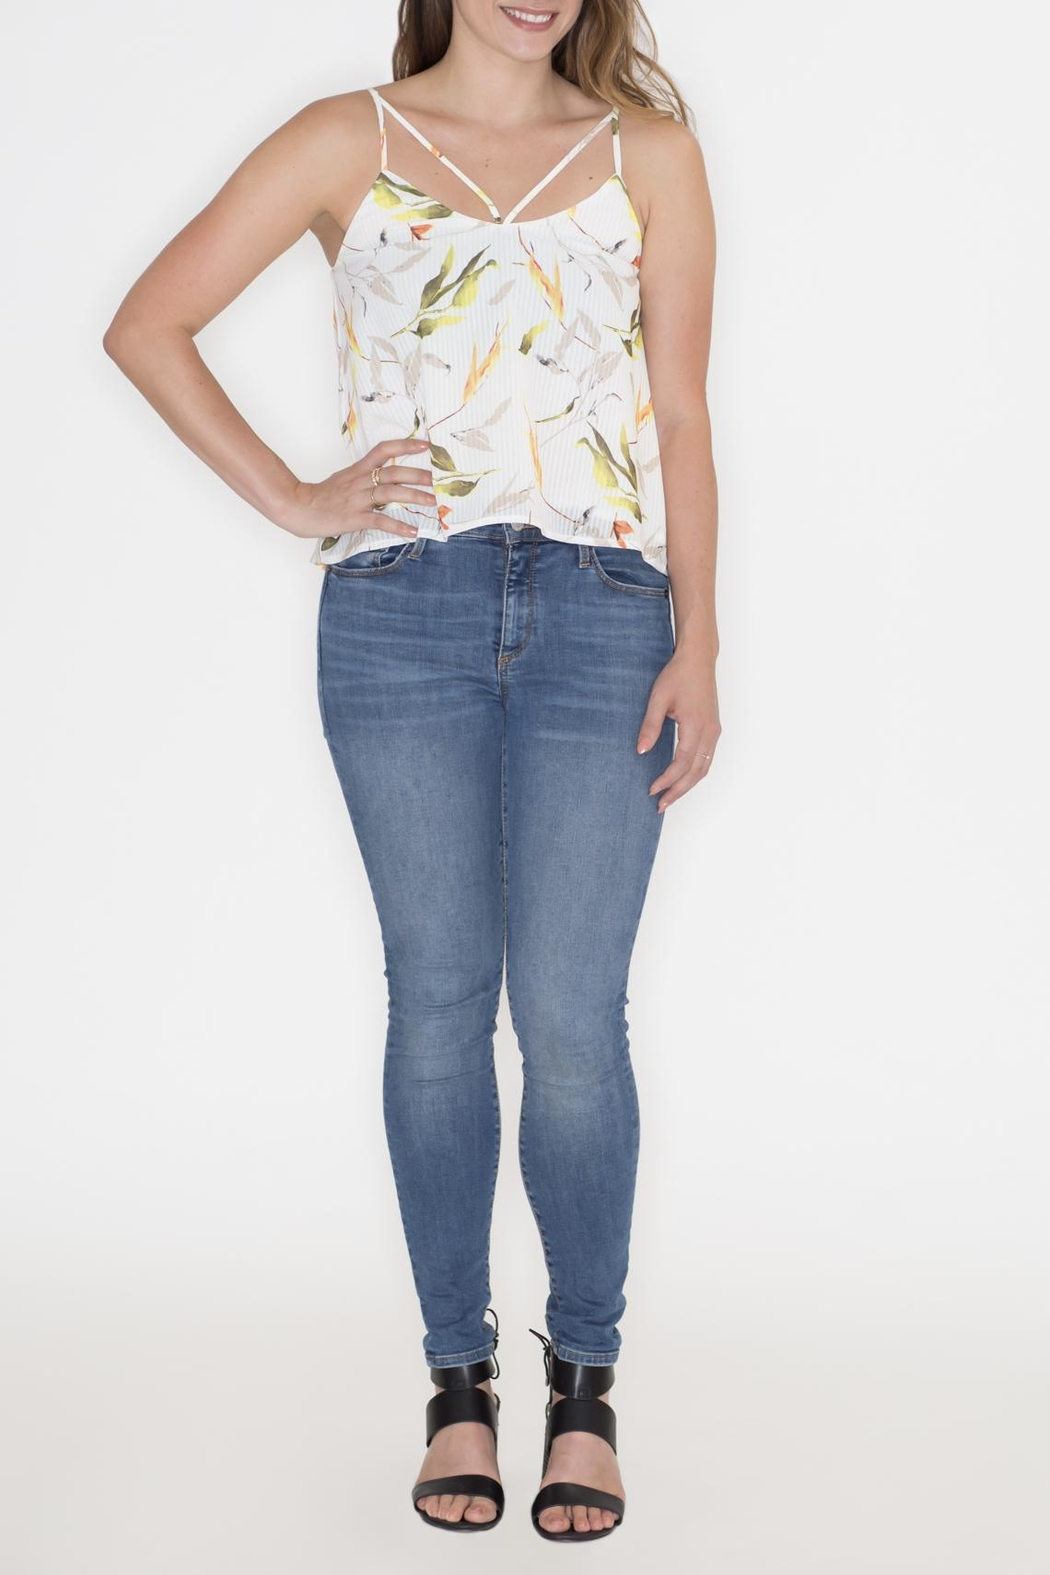 Hommage Floral Cami Top - Back Cropped Image